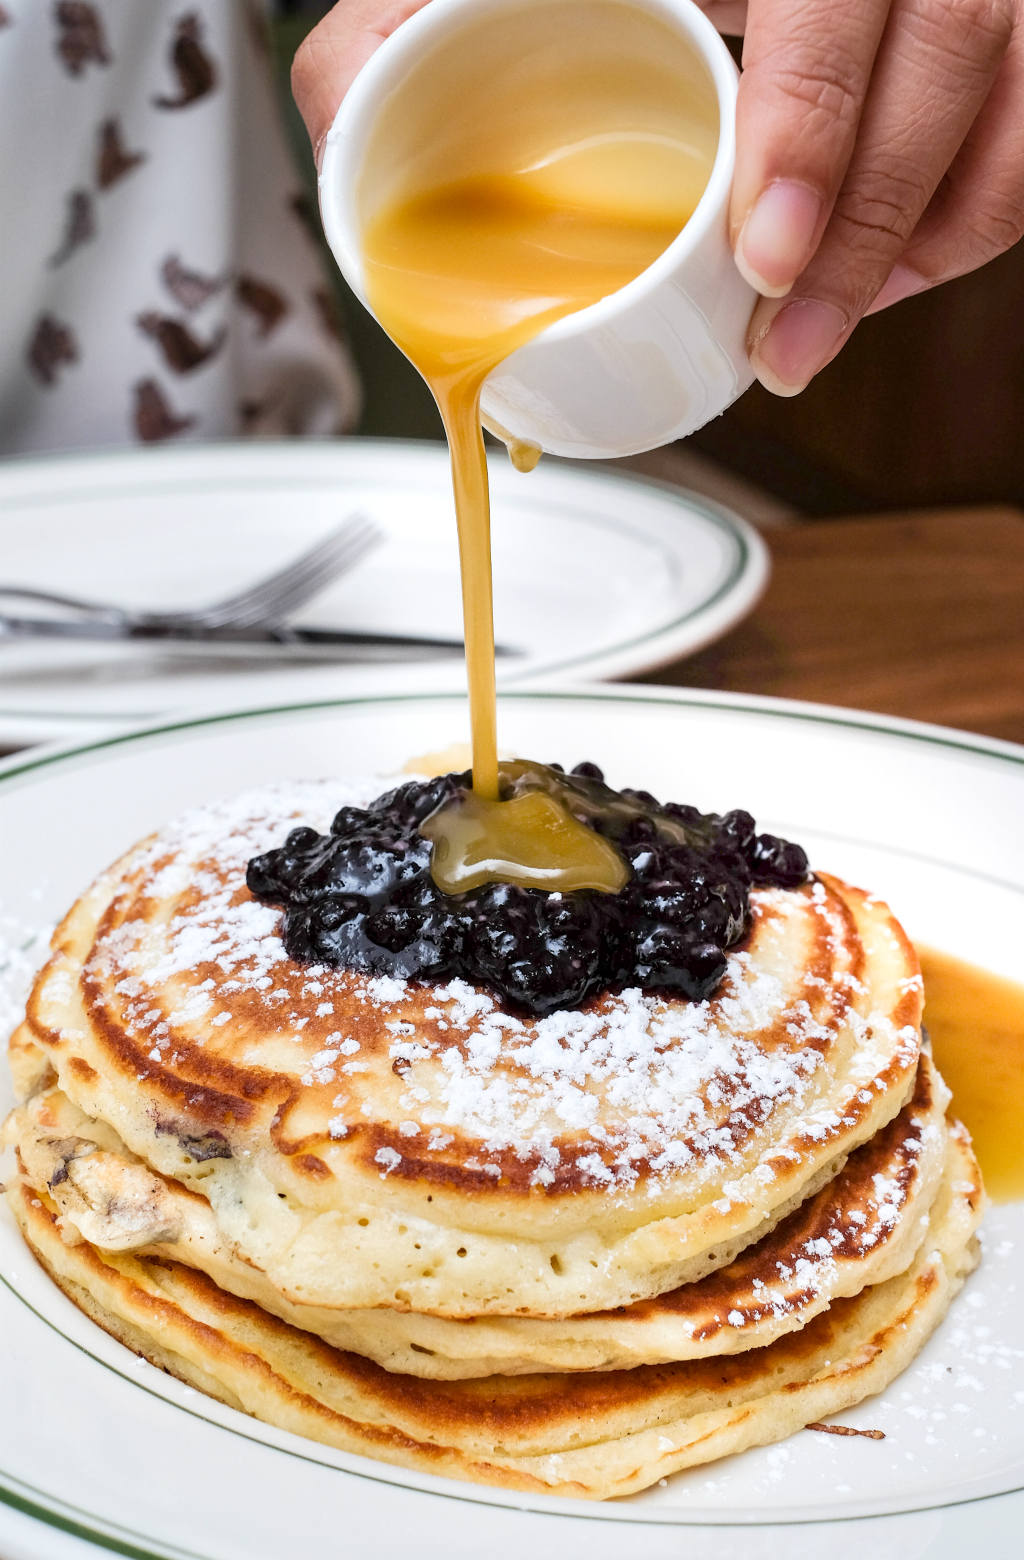 clinton street bakery: Pancakes with warm maple butter